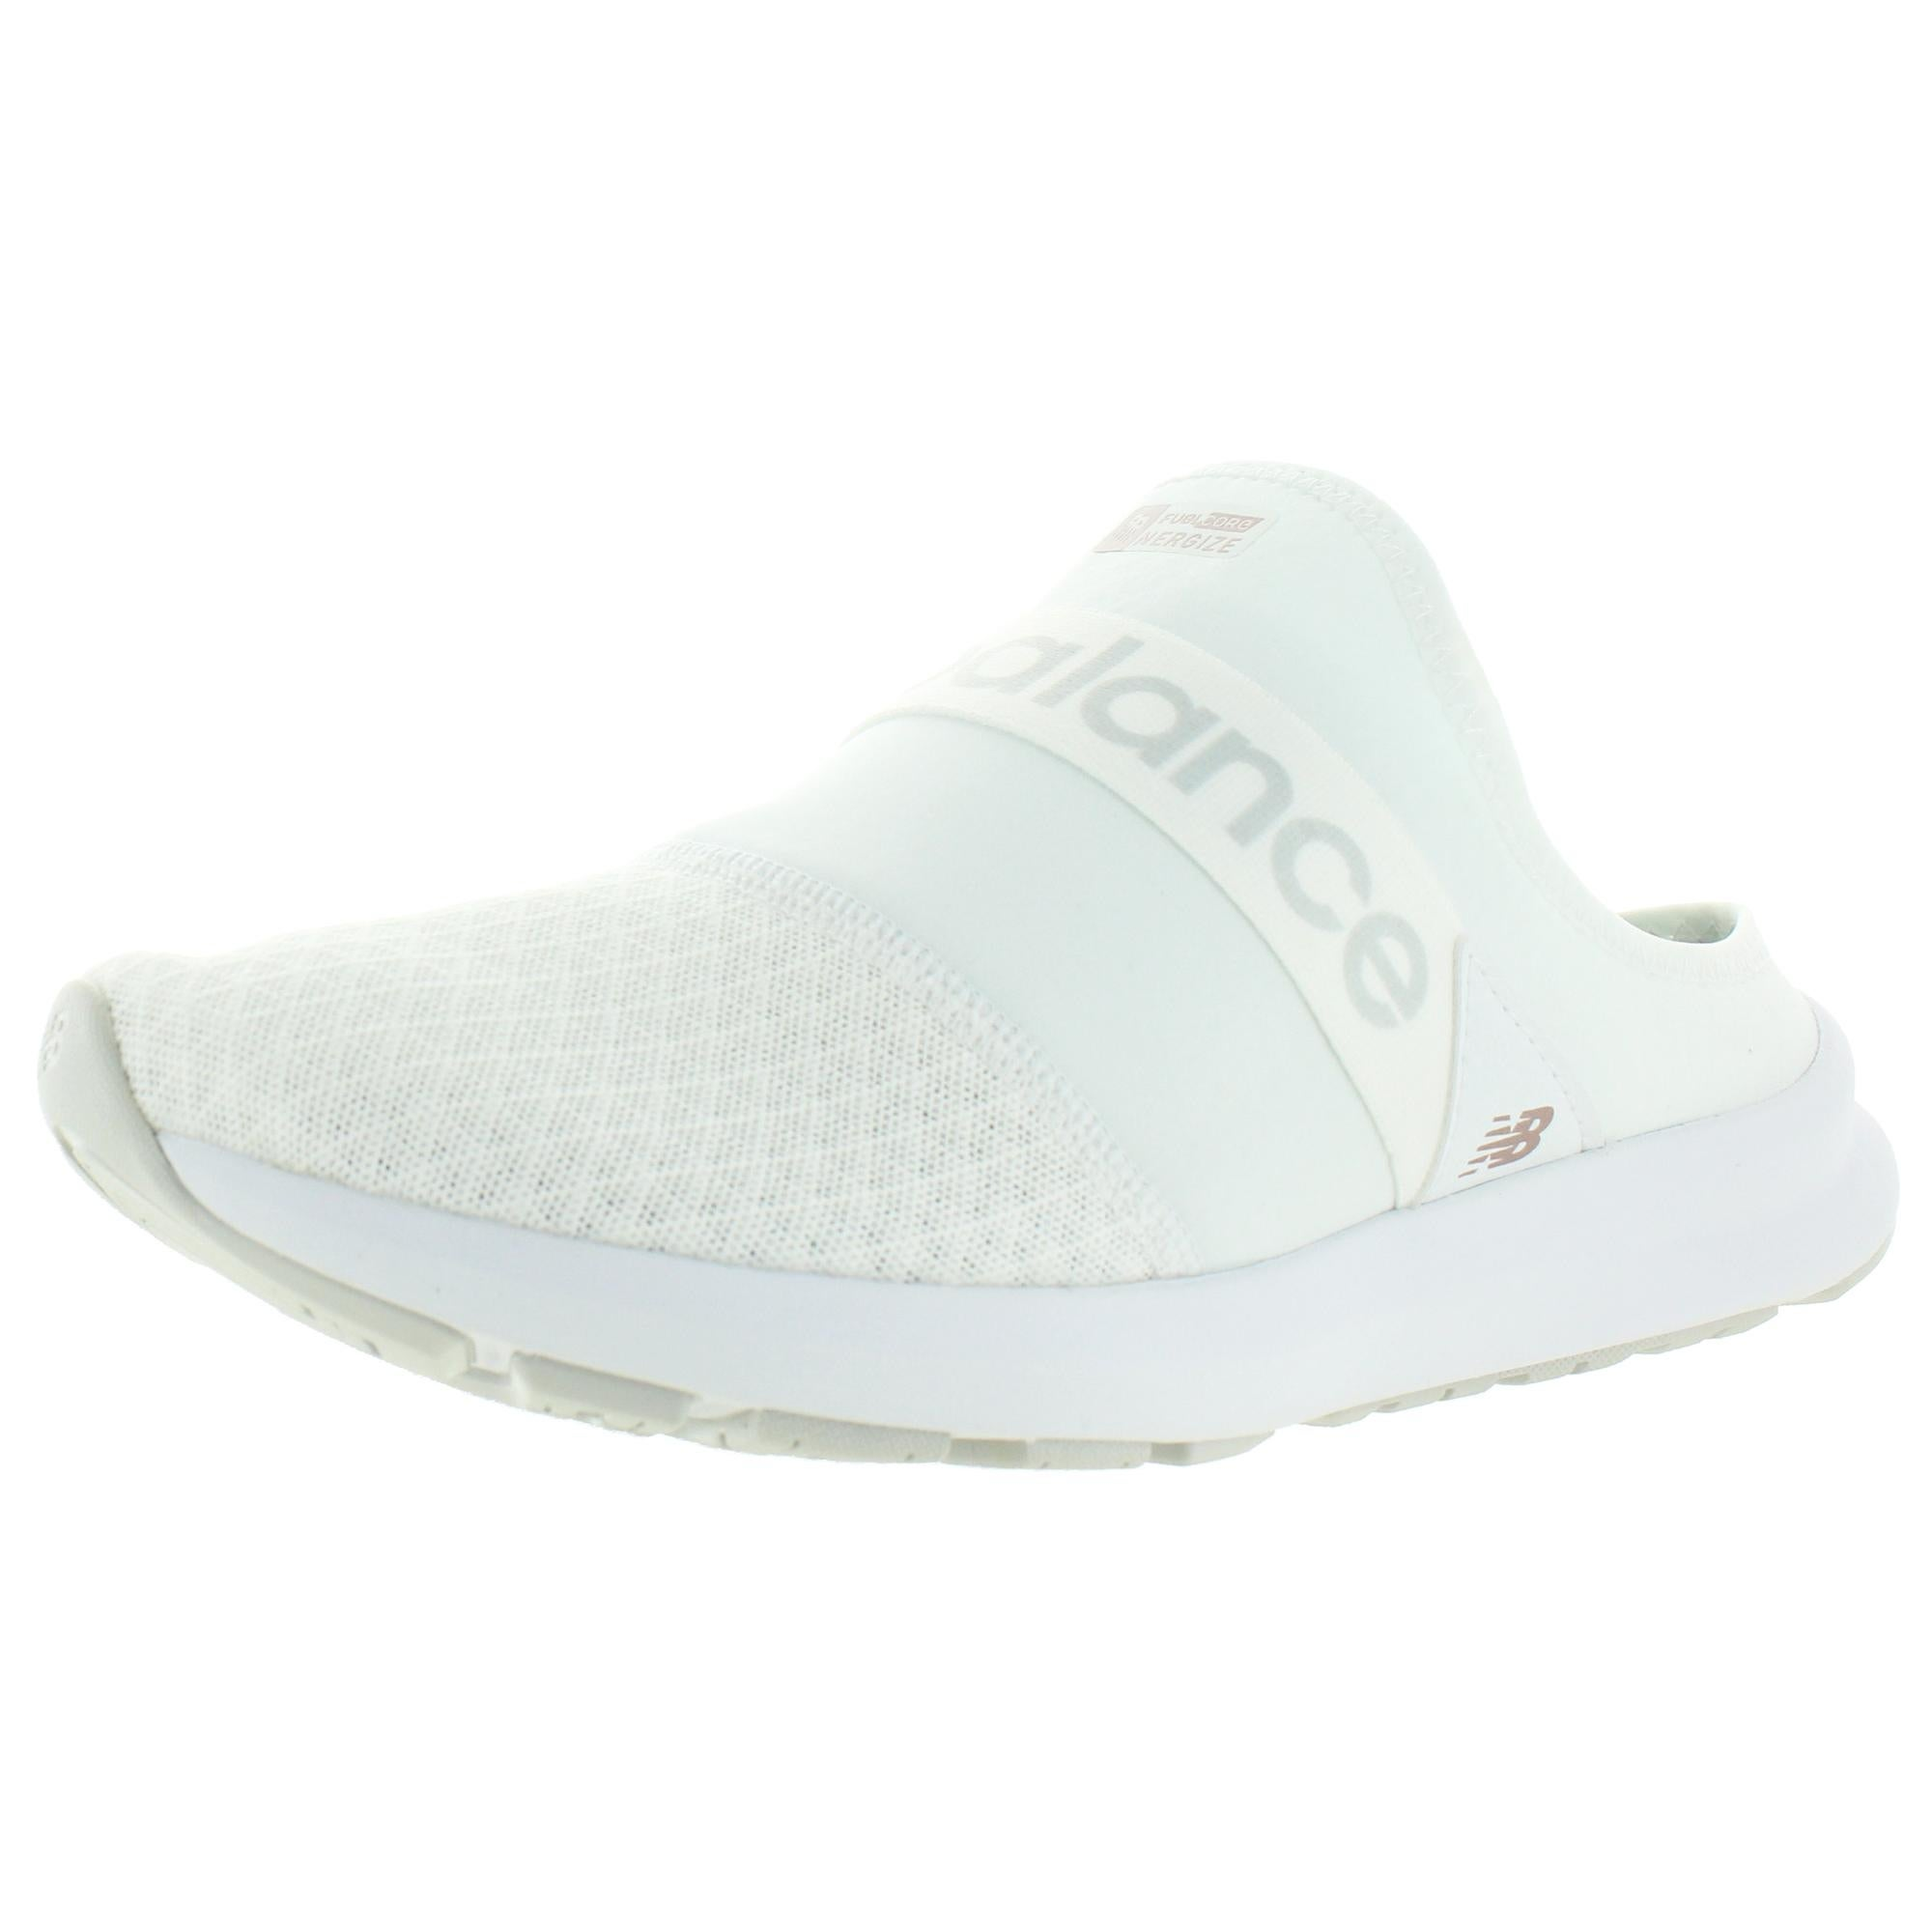 new balance womens shoes with memory